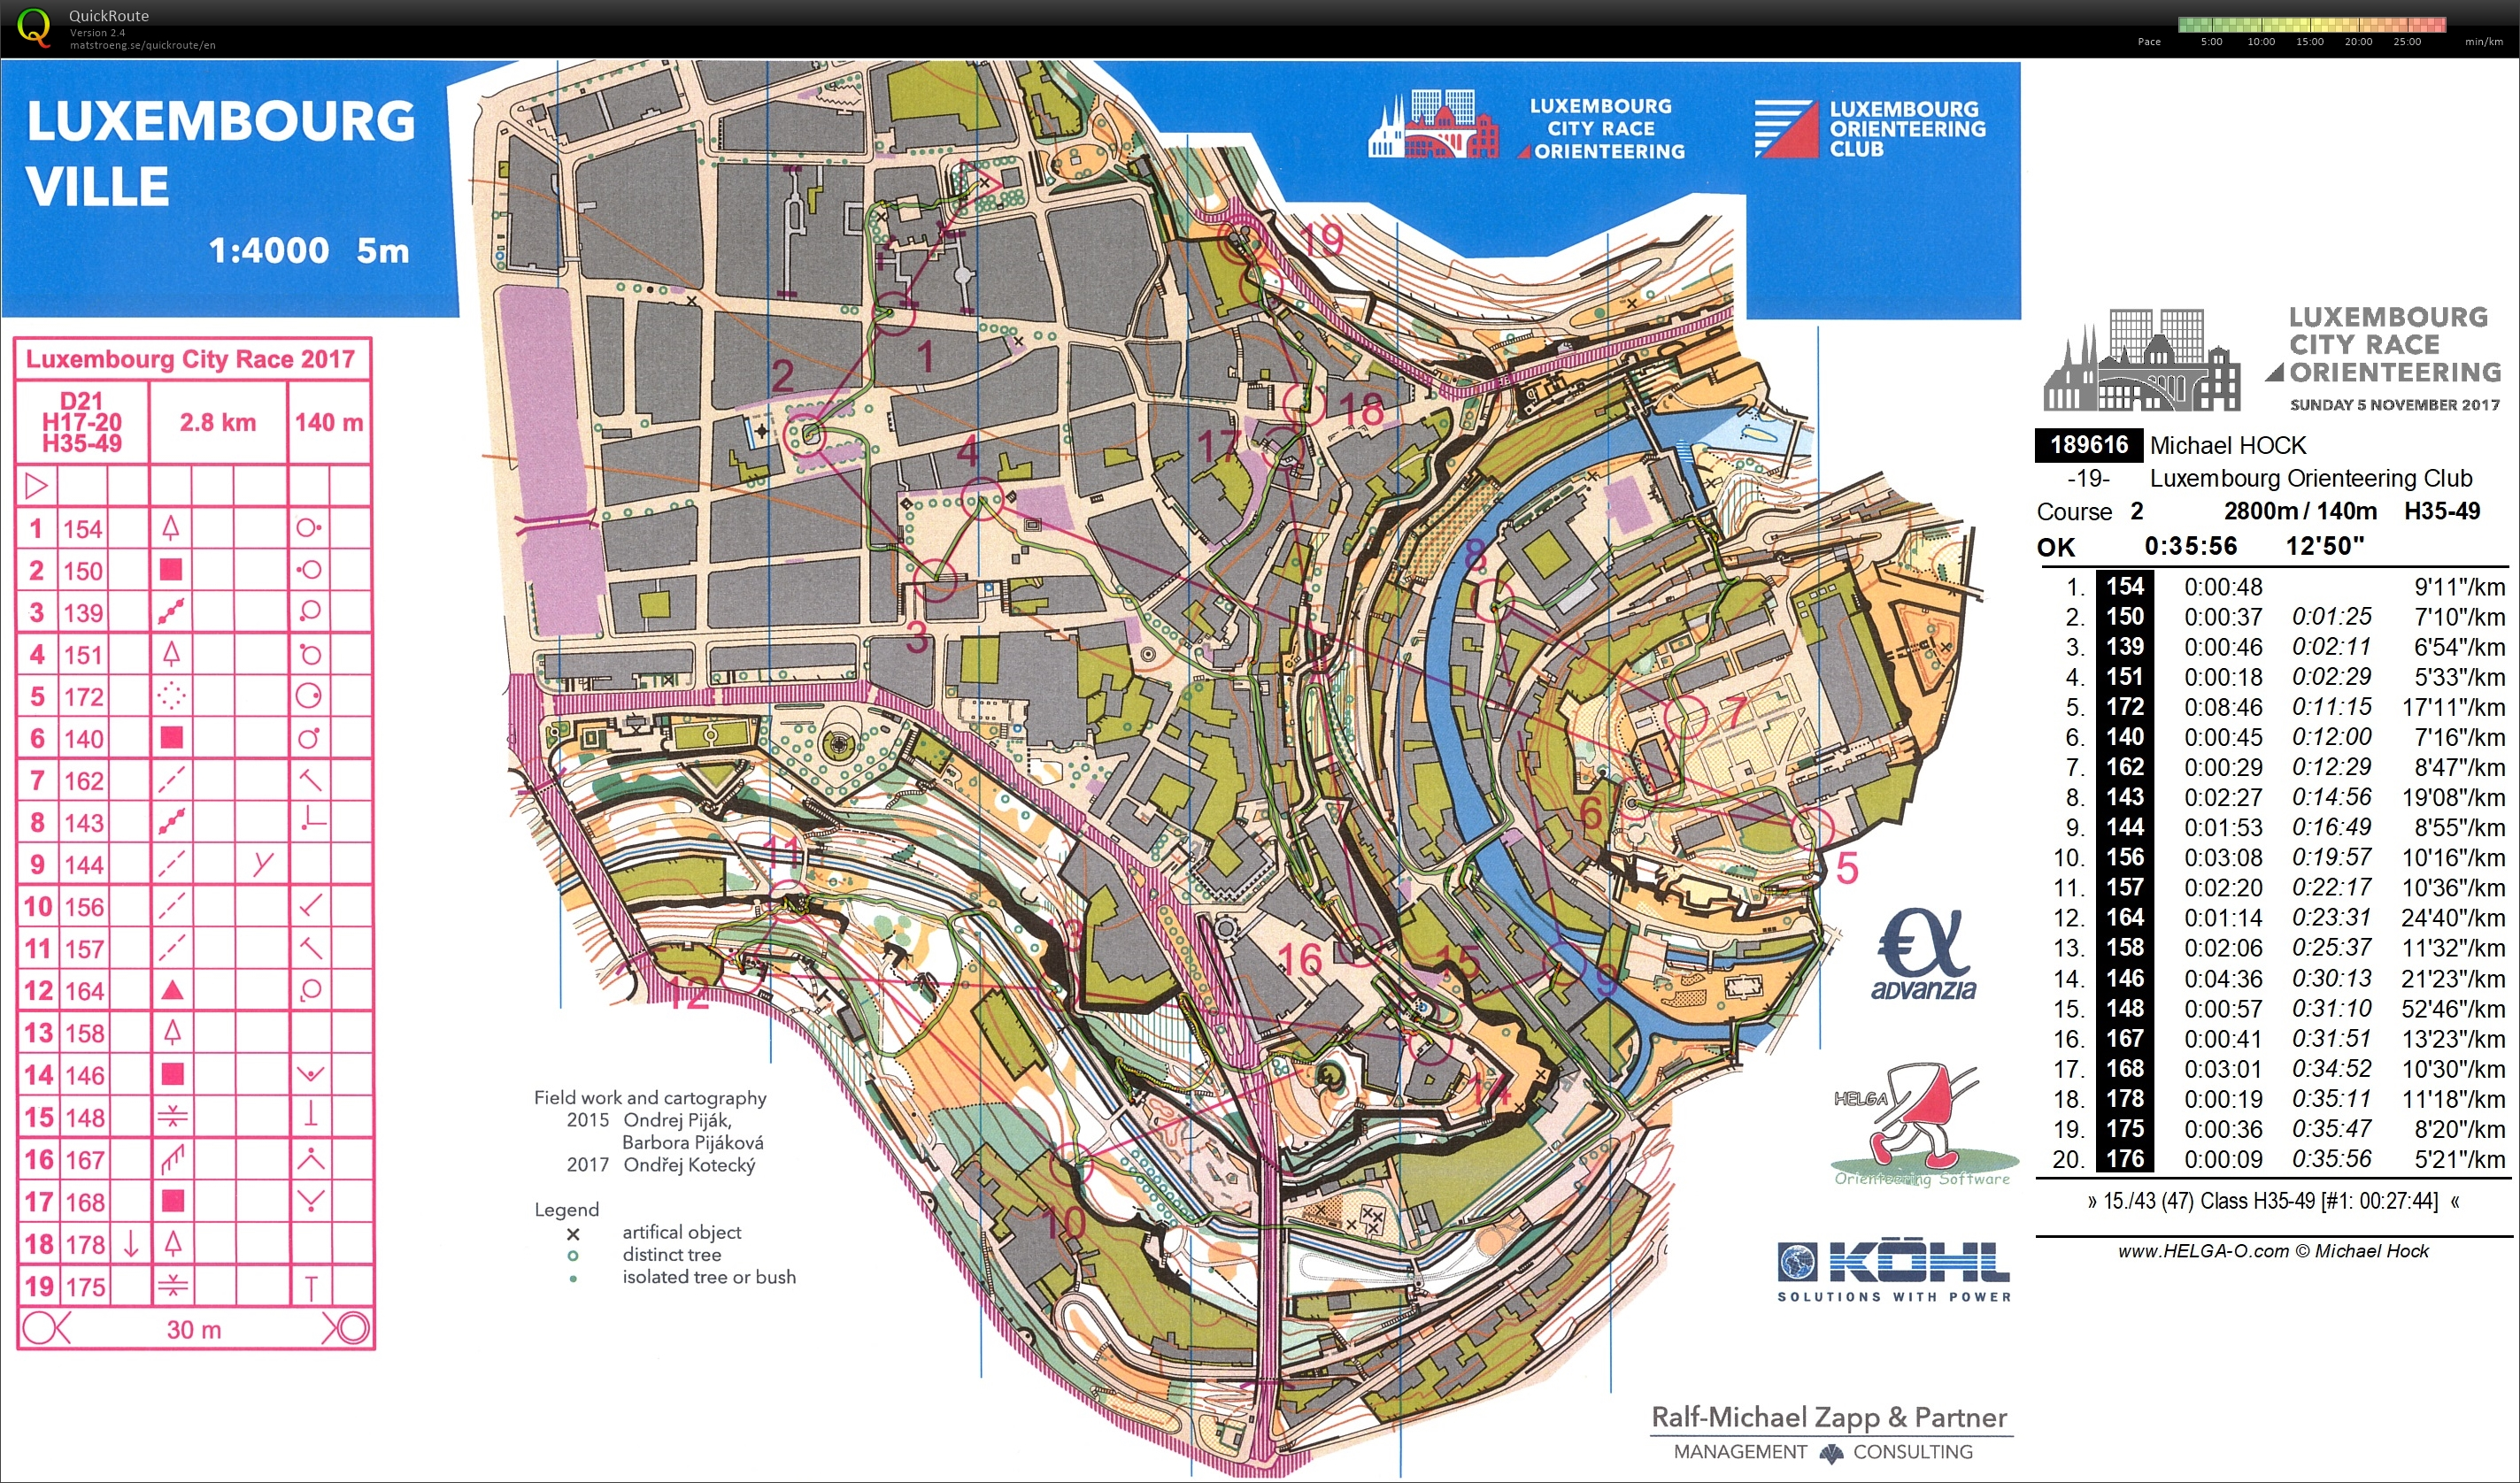 Luxembourg City Race (05.11.2017)